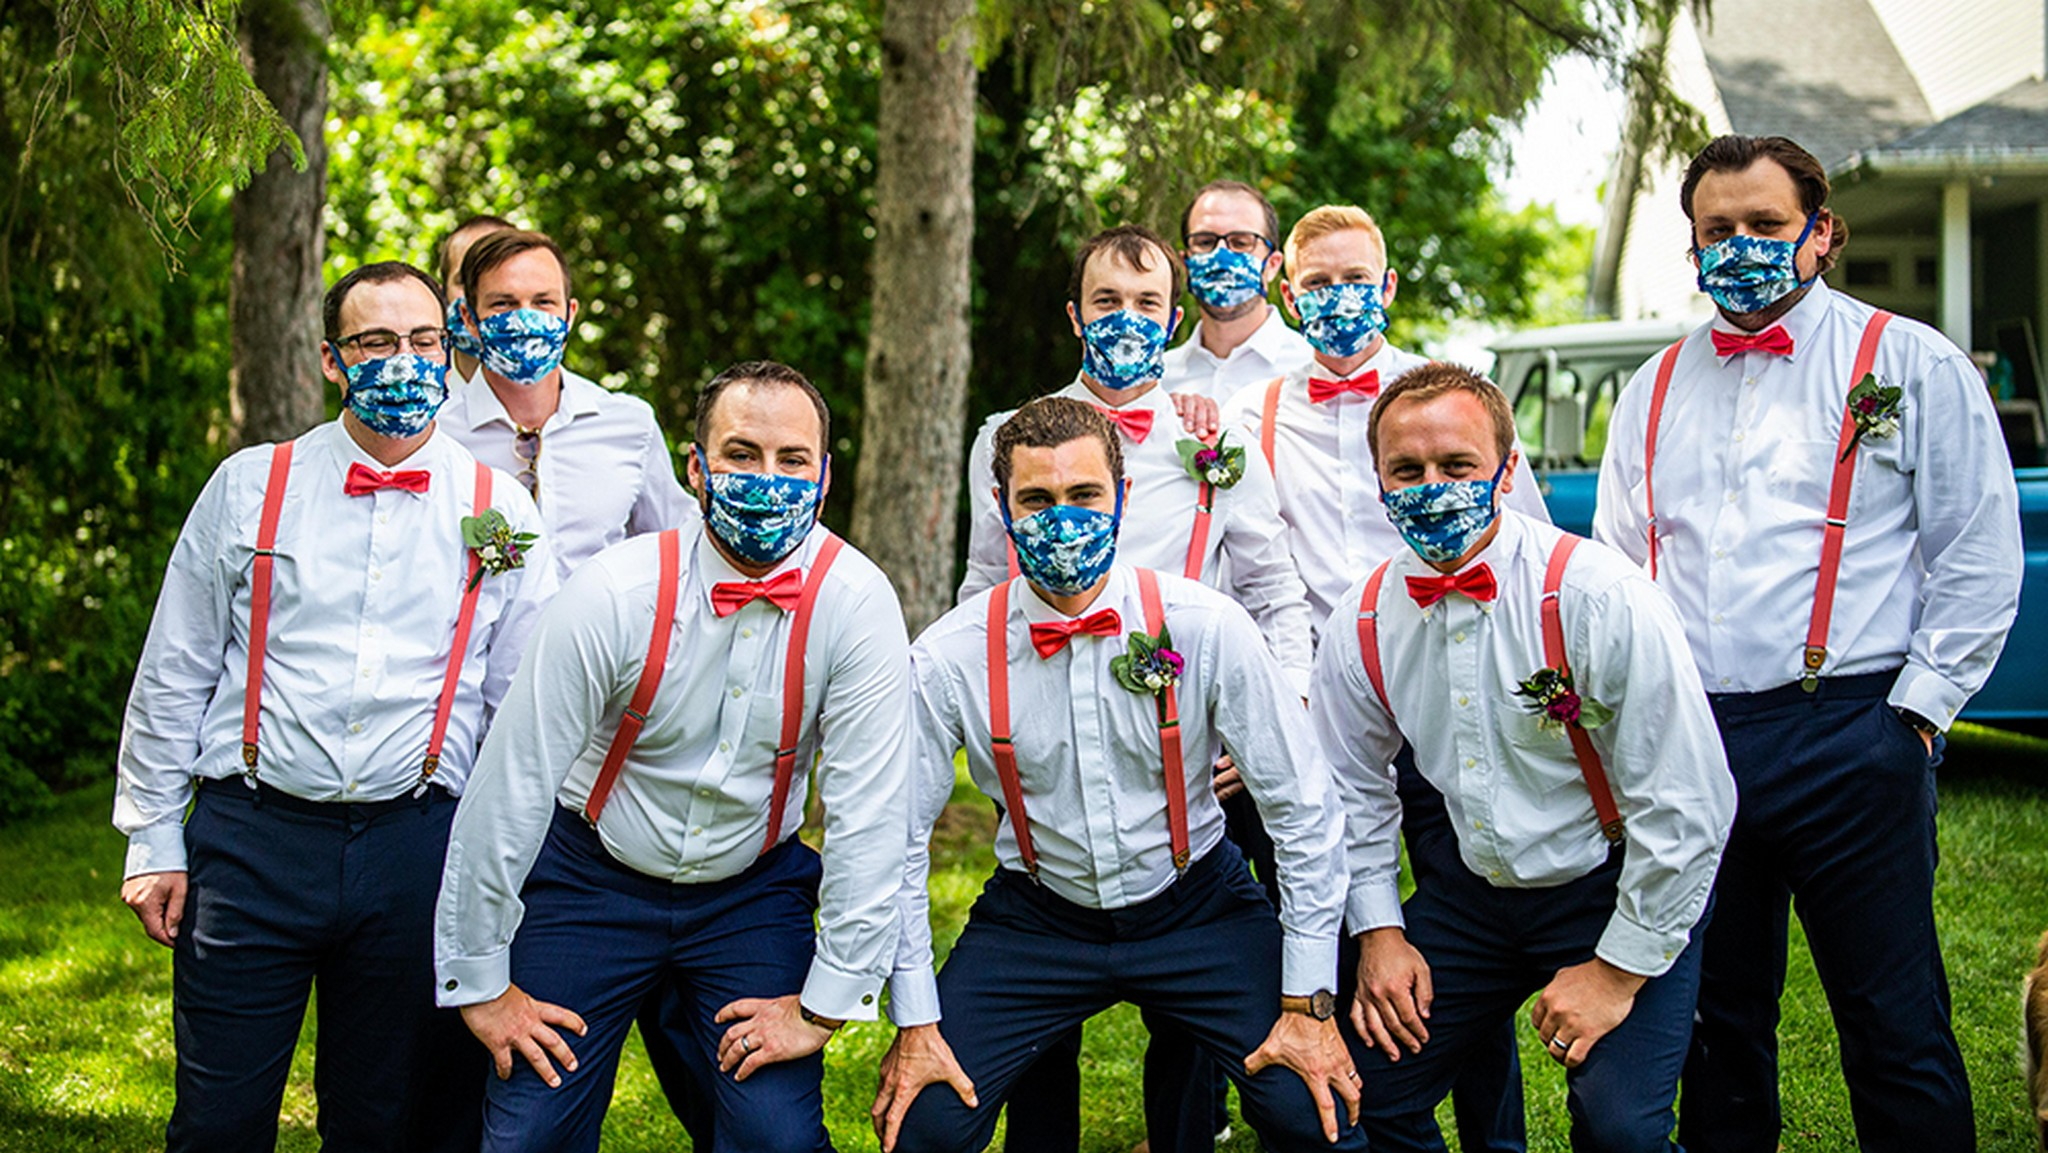 Groomsmen wearing matching masks